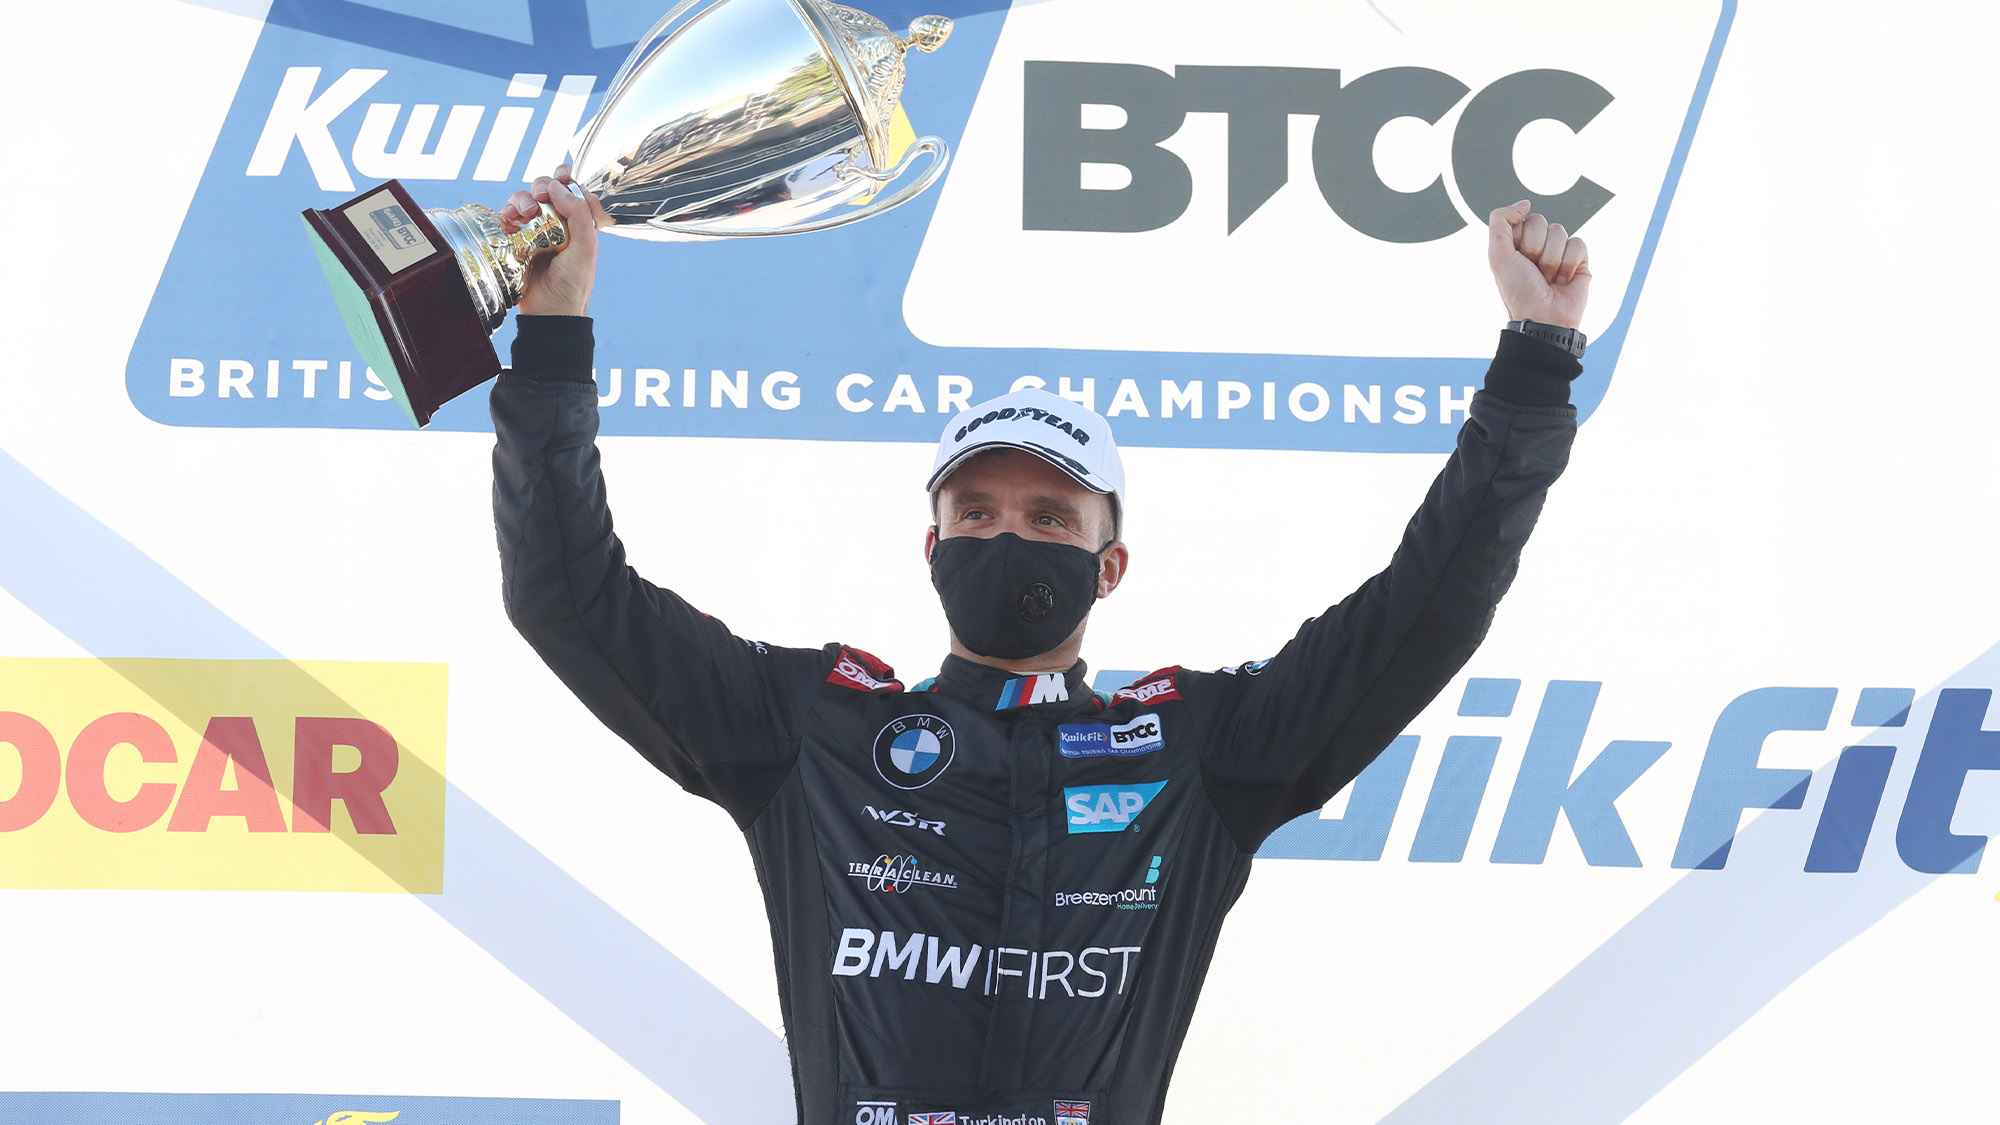 Colin Turkington celebrates victory at Snetterton on the BTCC podium in 2020